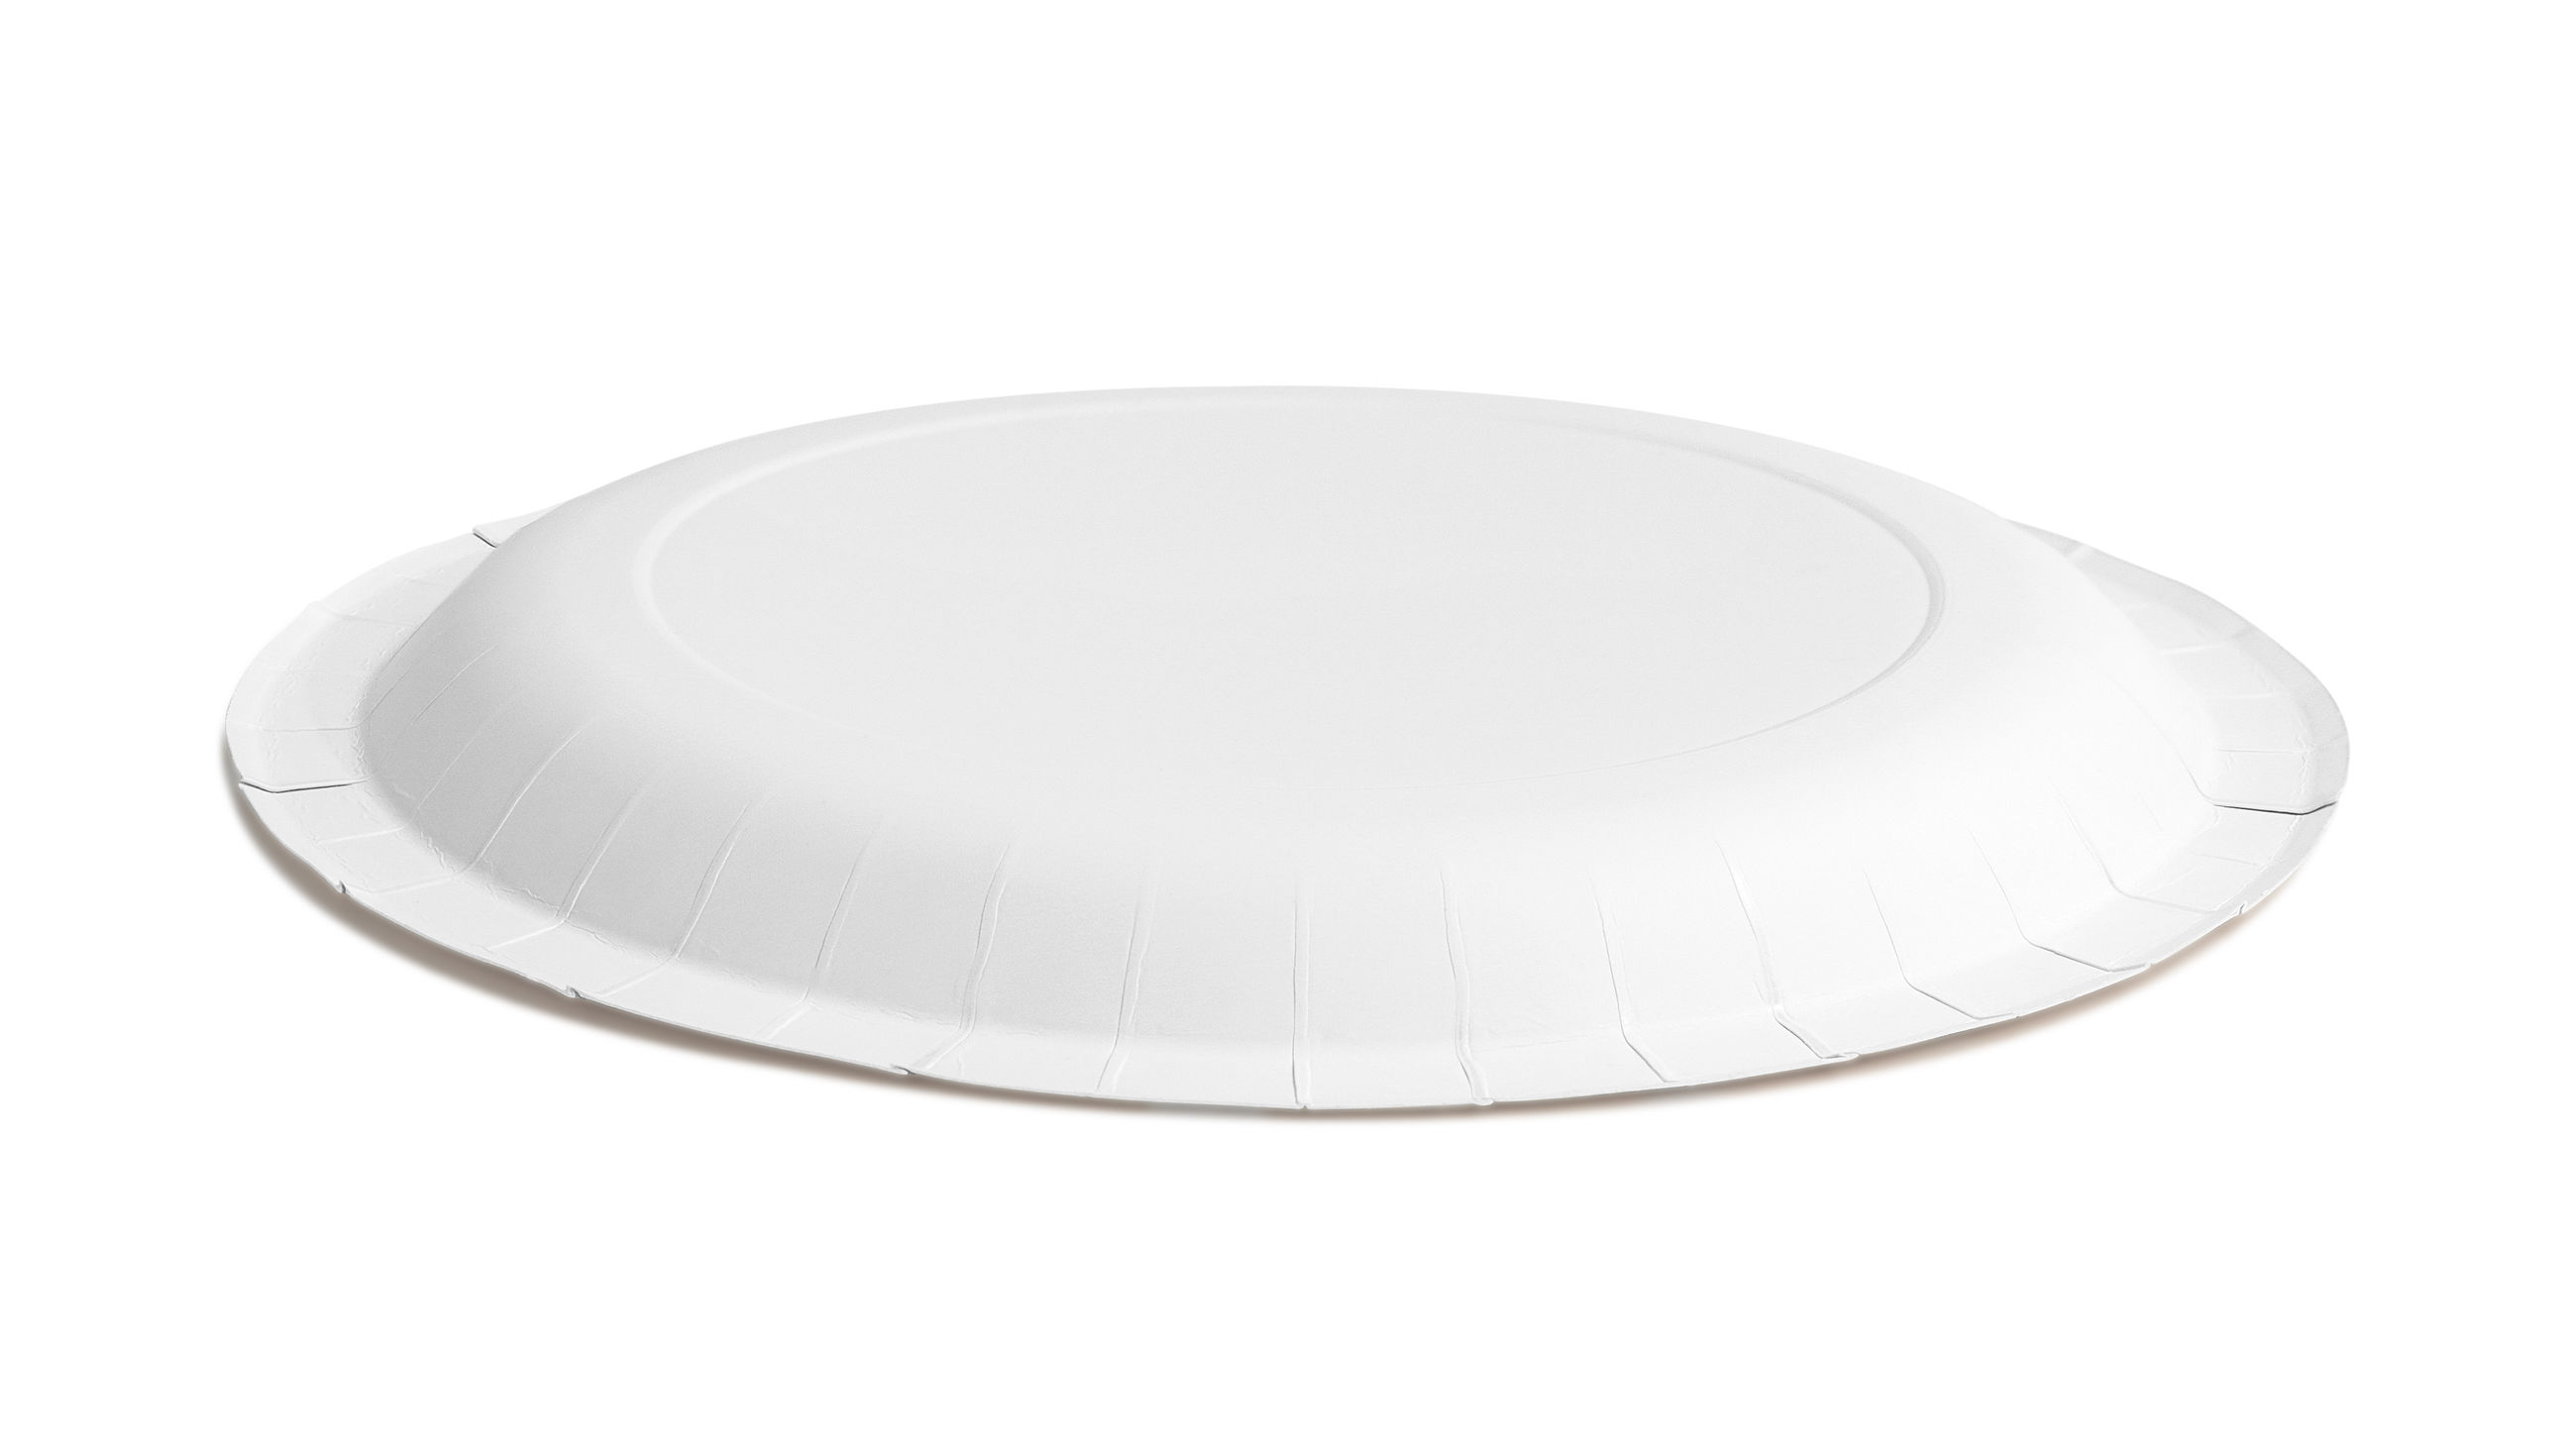 Close-up of plate over white background